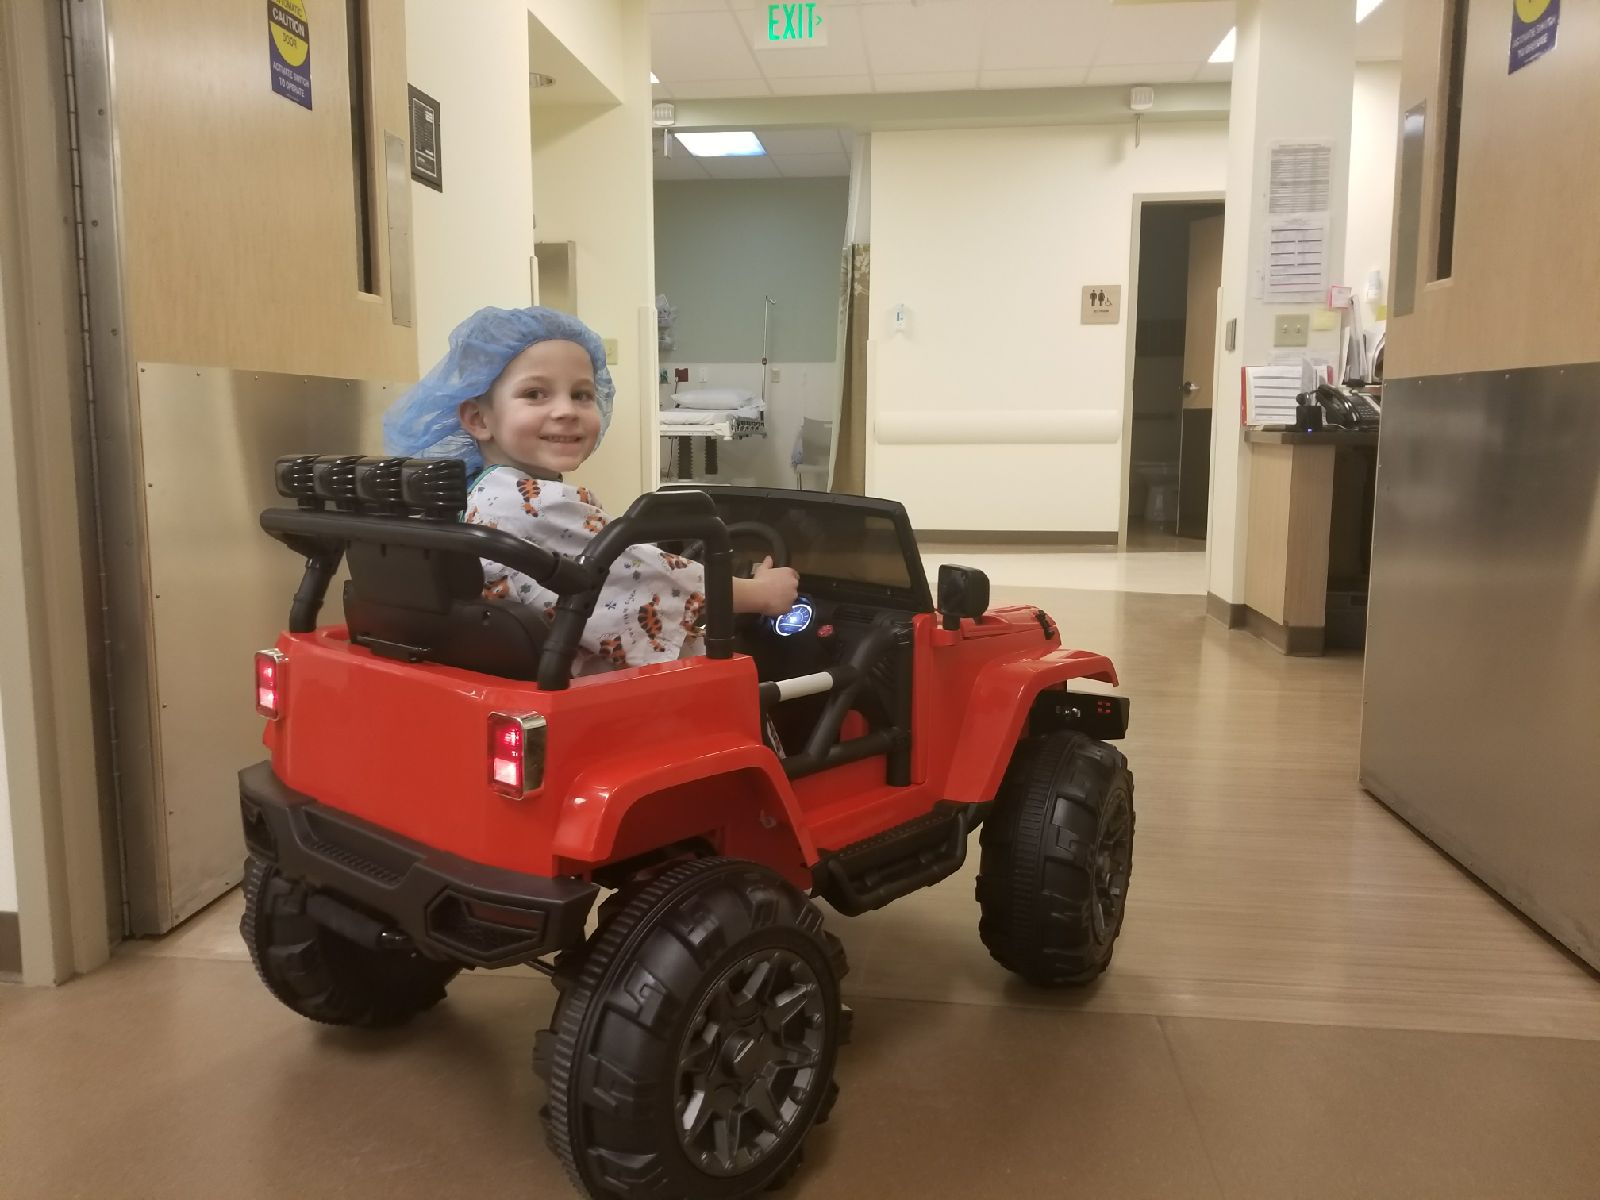 Center-for-Minimally-Invasive Surgery-Jeep-Philosophy